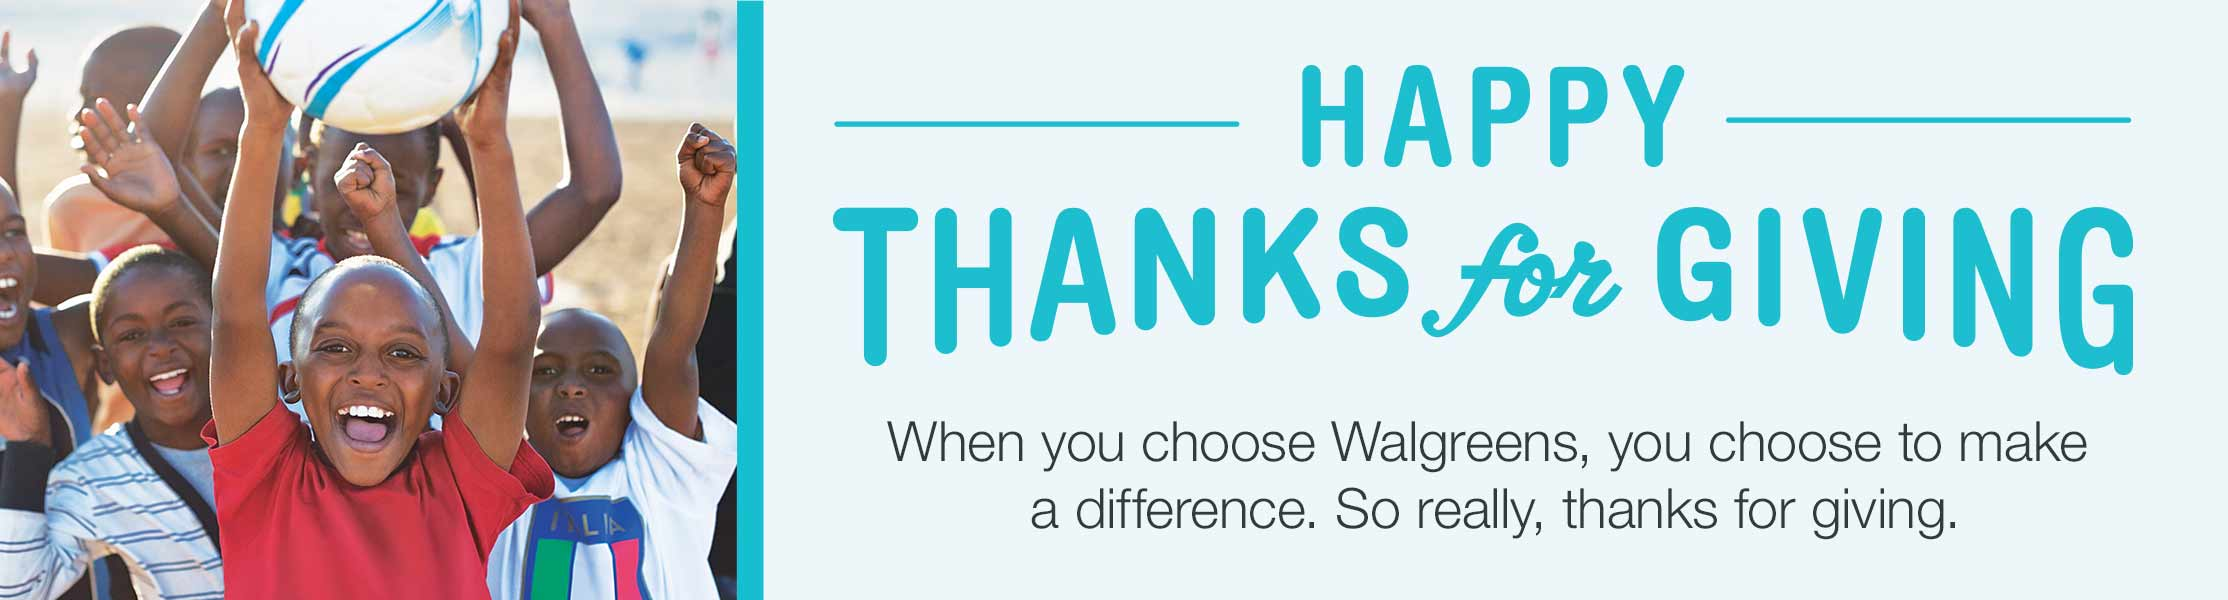 HAPPY THANKS for GIVING! When you choose Walgreens, you choose to make a difference. So really, thanks for giving.